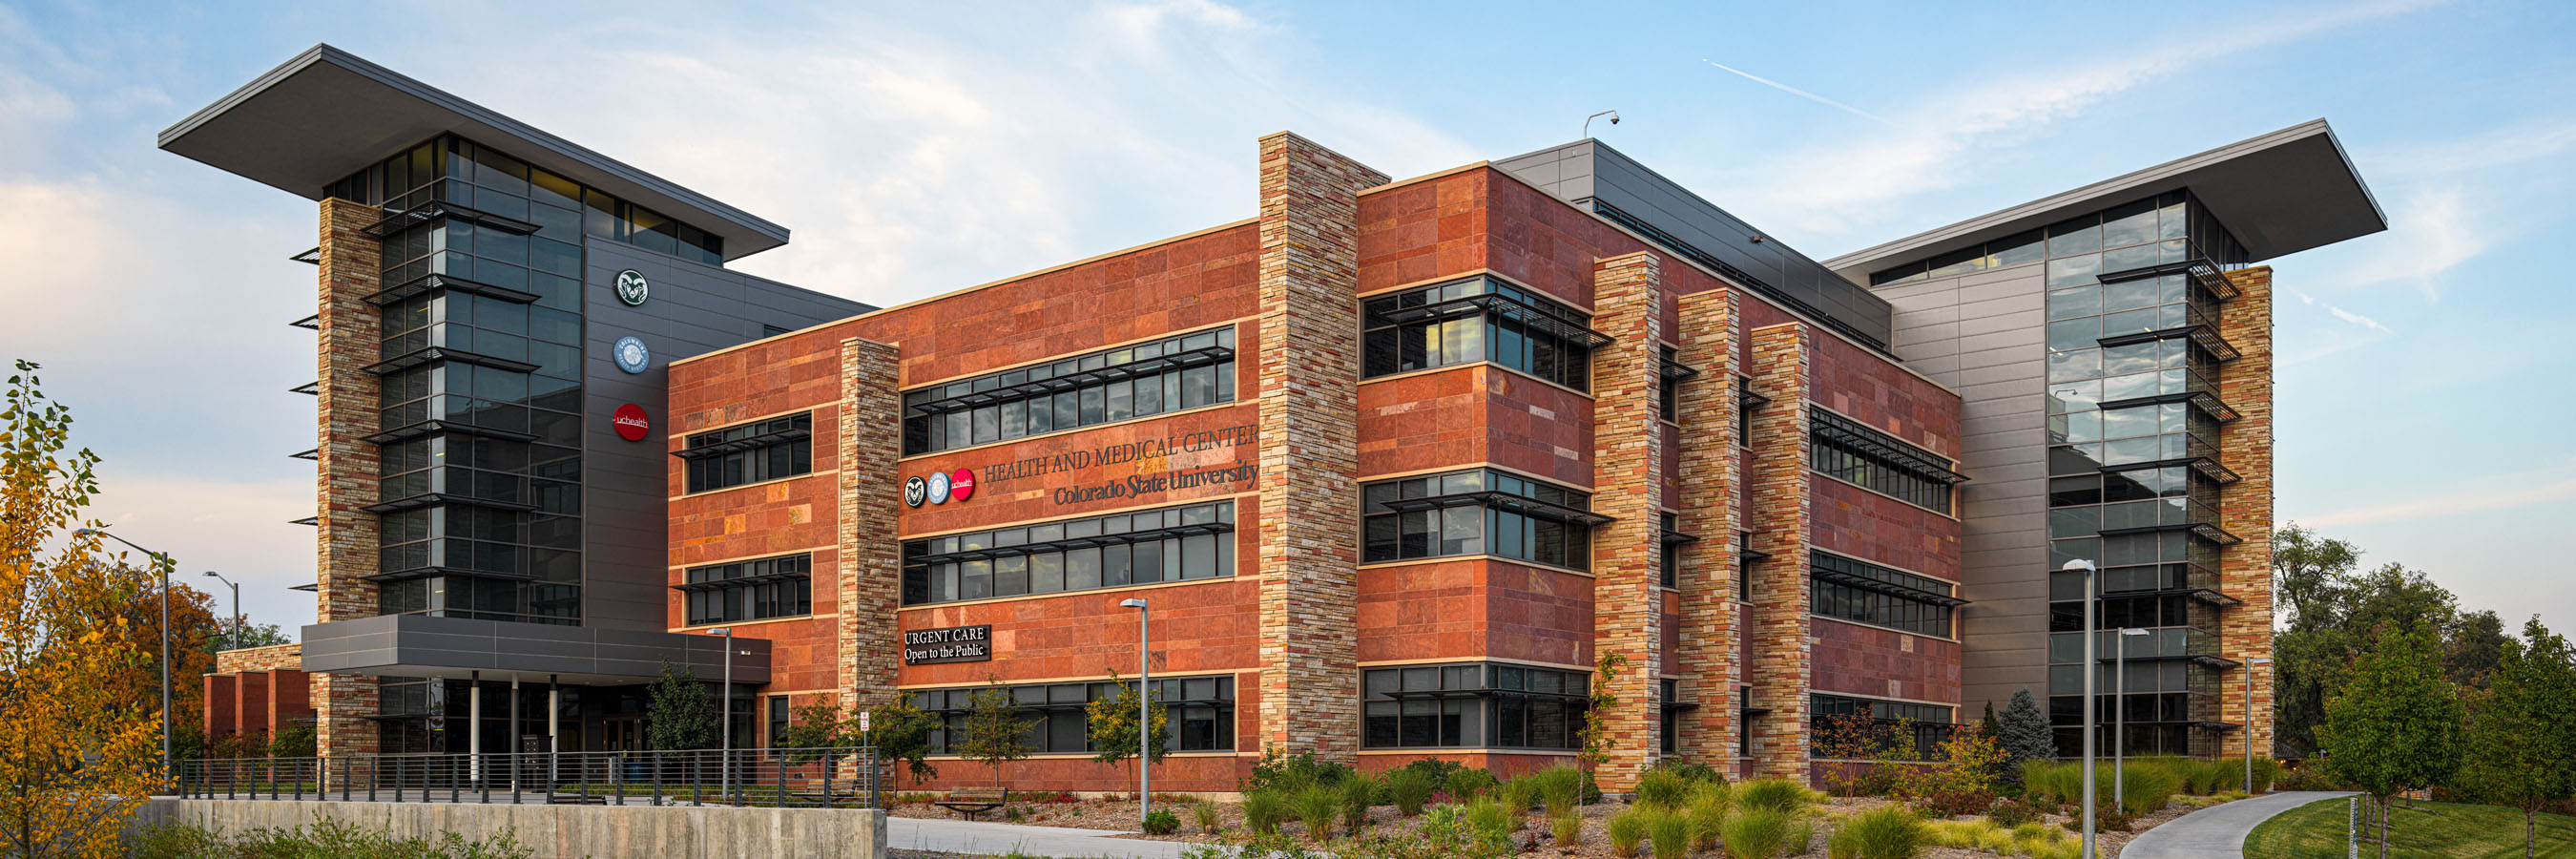 Architecture photography of CSU Health and Medical Center in Fort Collins, Colorado.